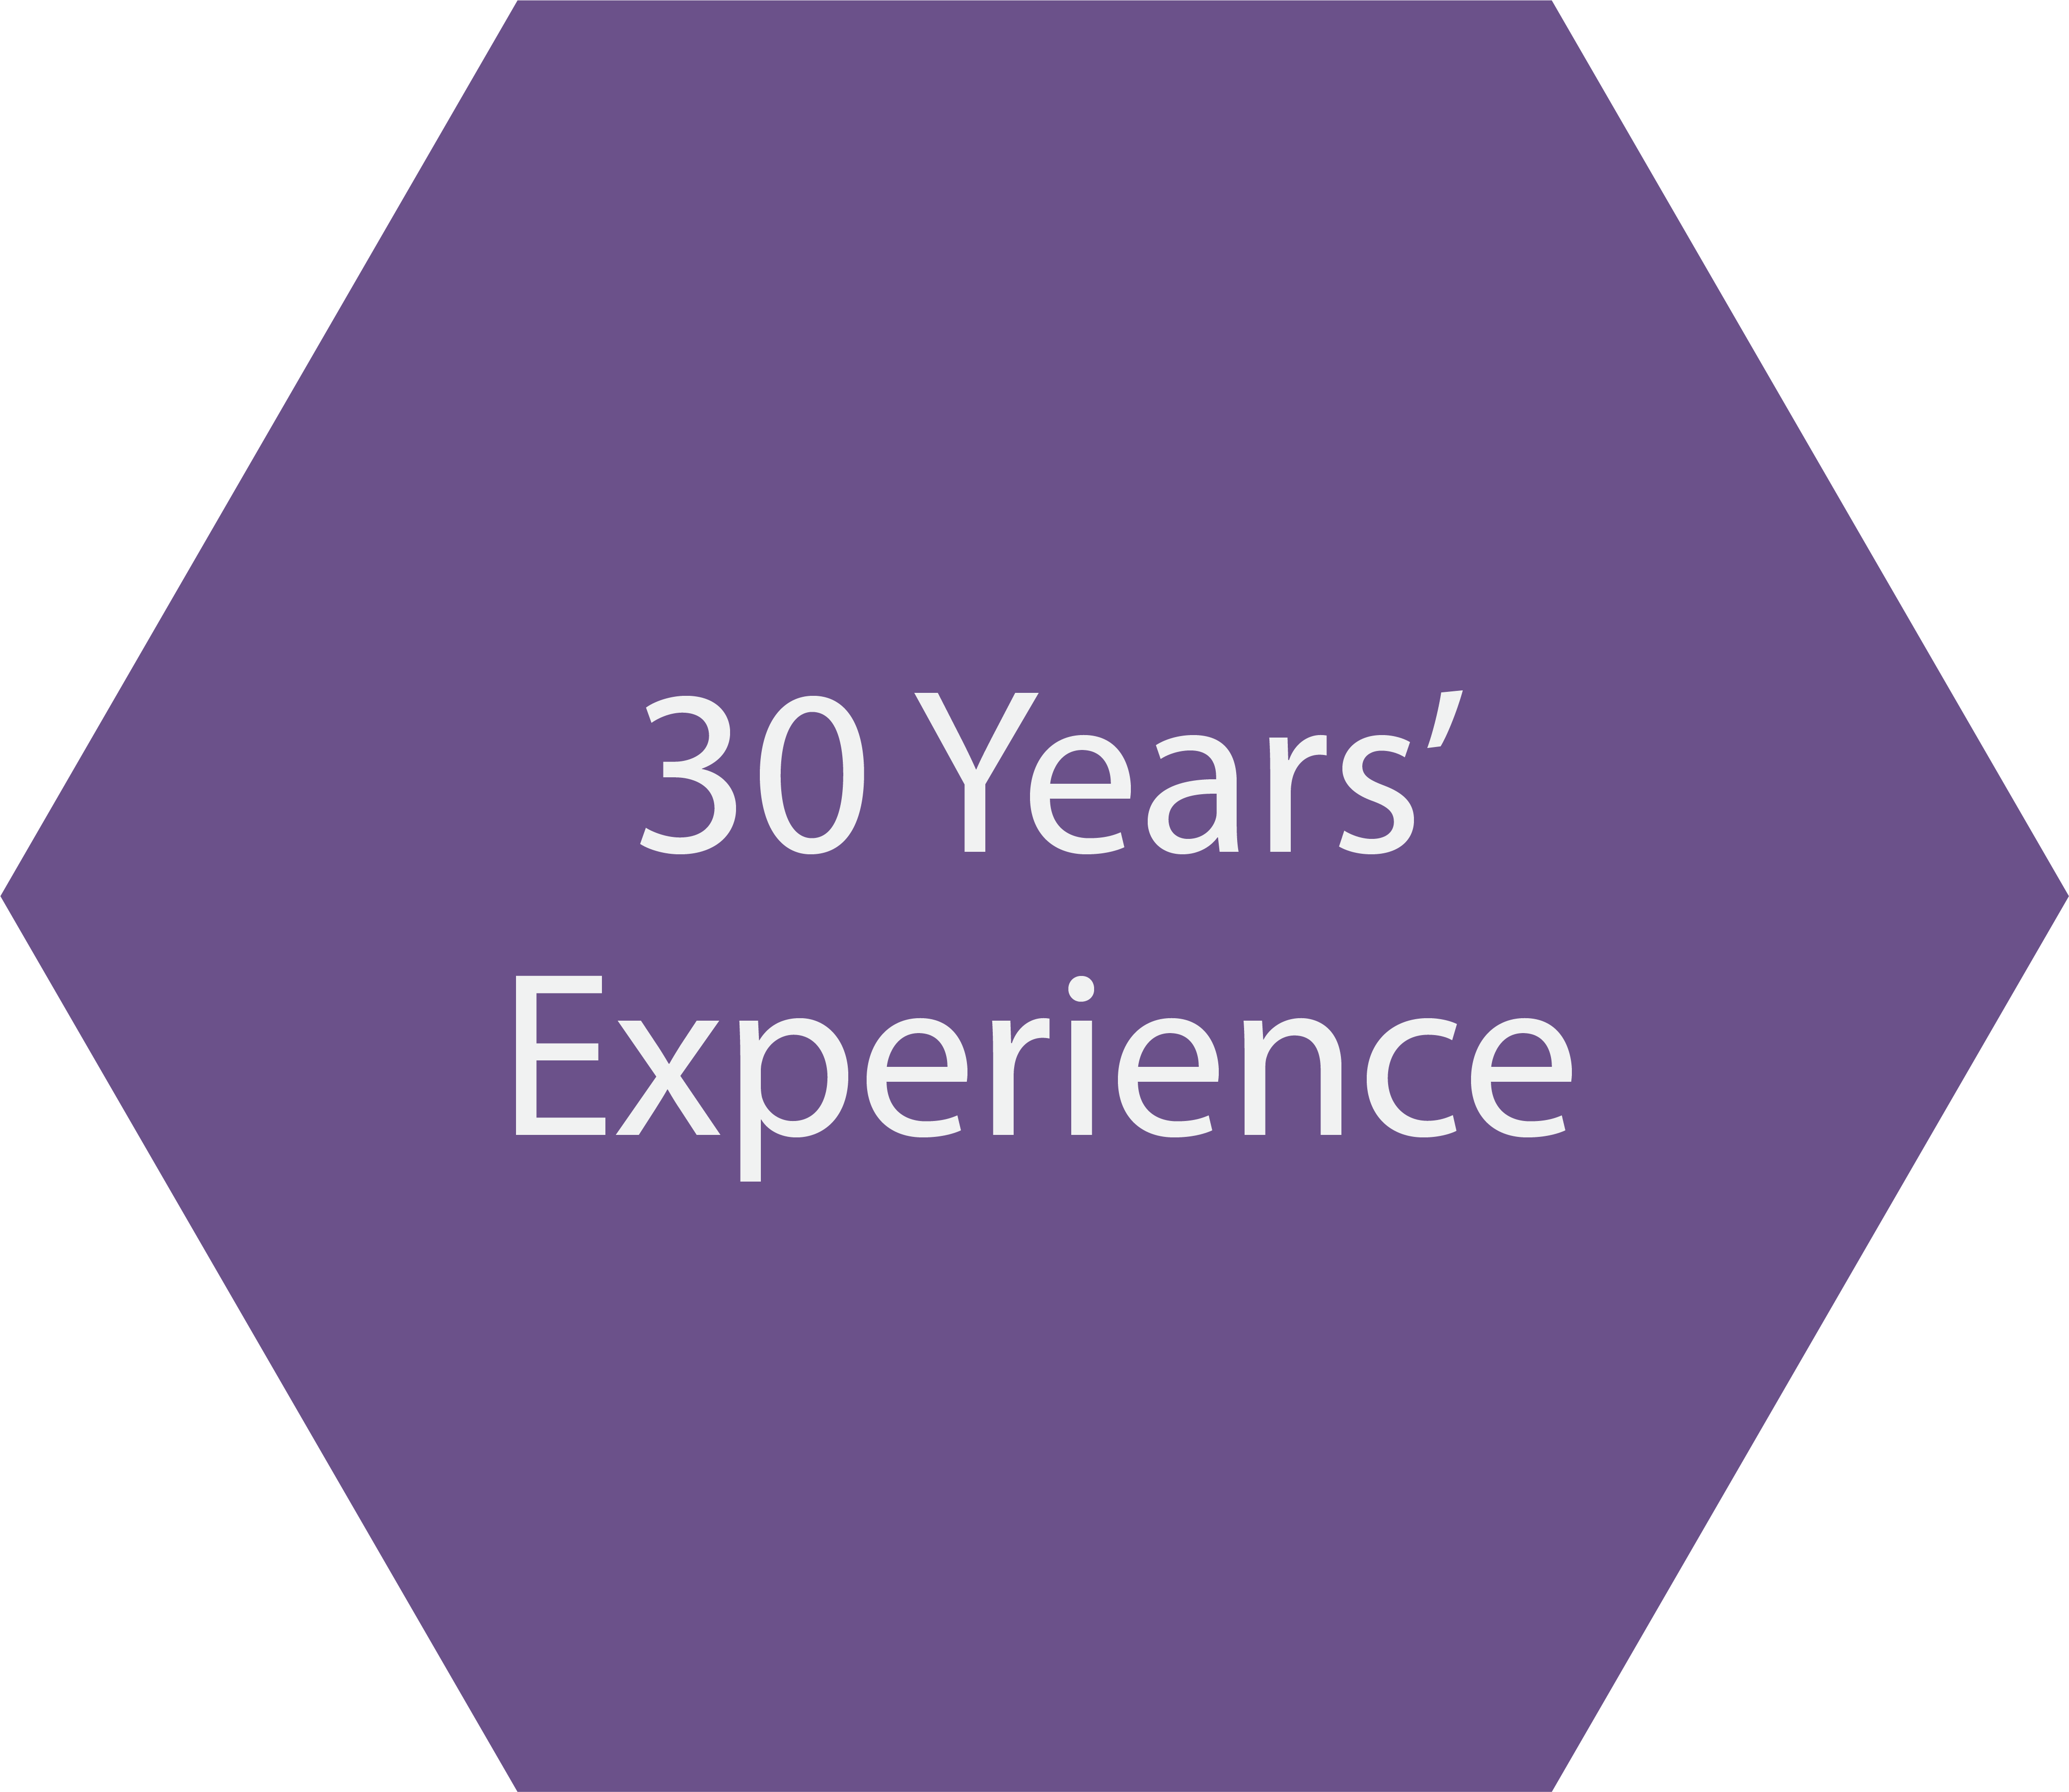 30 Years of Experience in Project Management